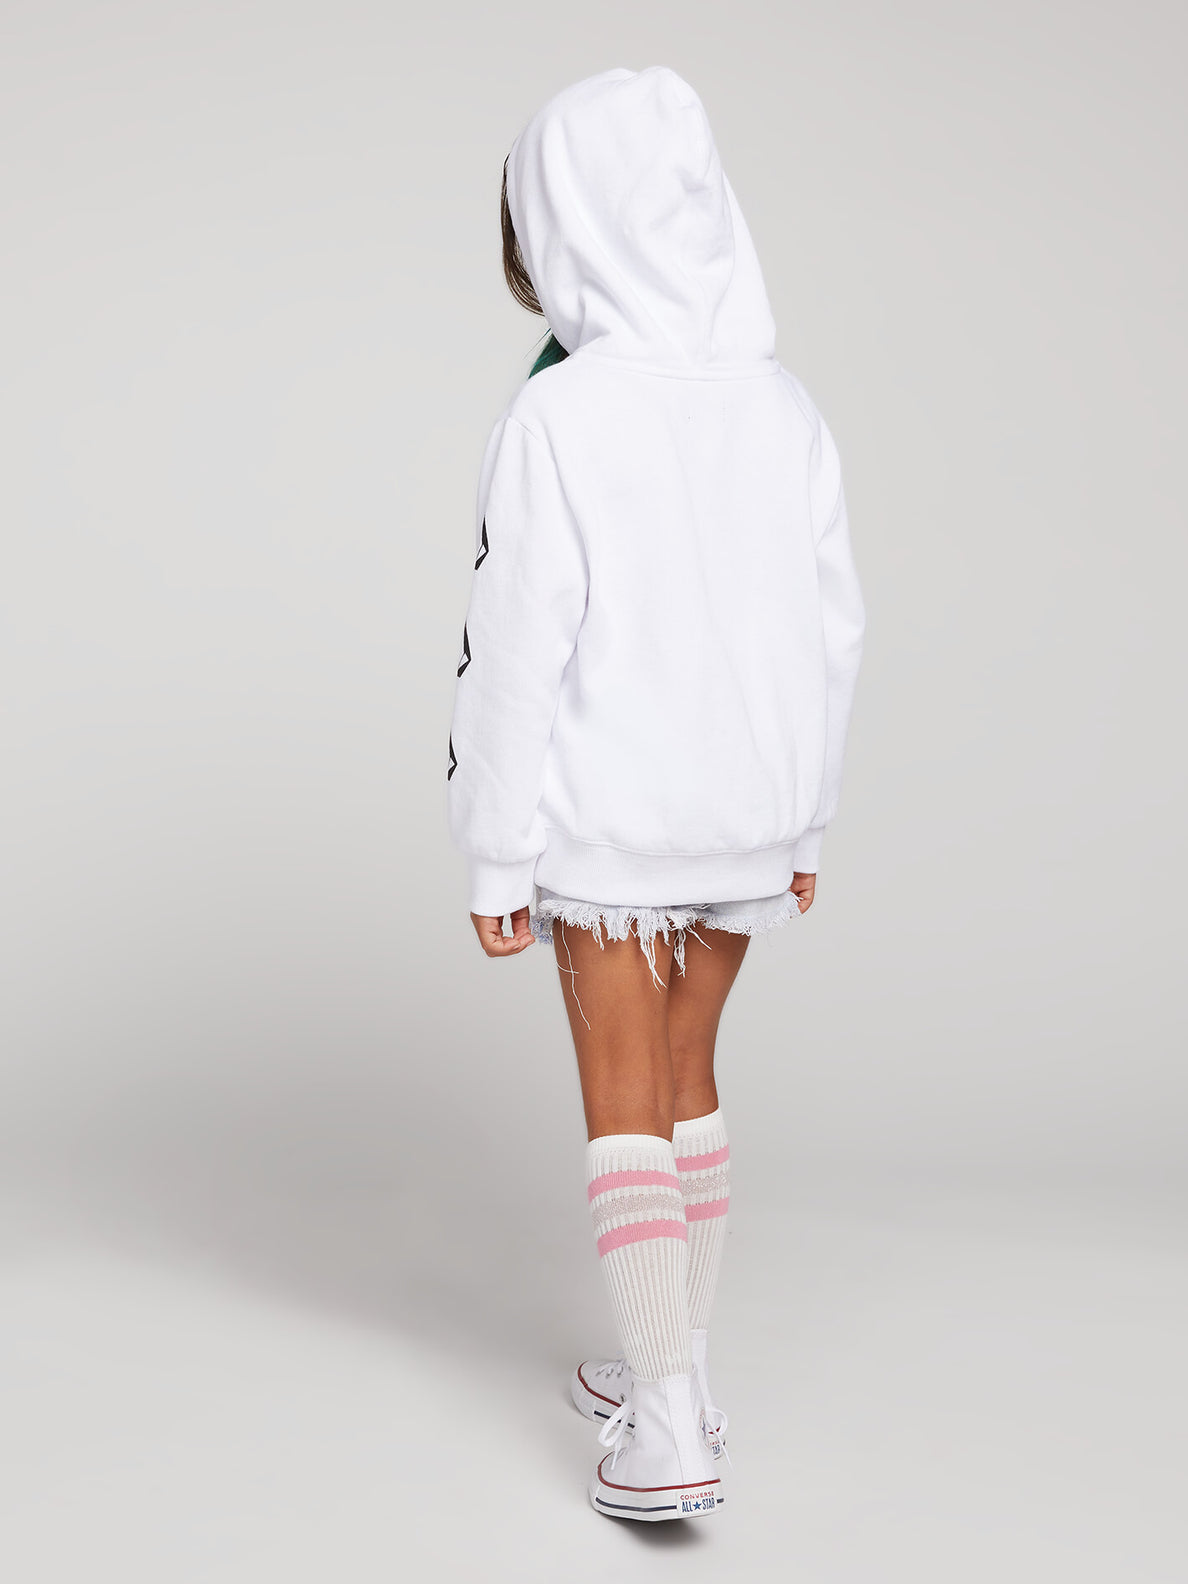 Little Girls Knew Wave Hoodie In White, Back View